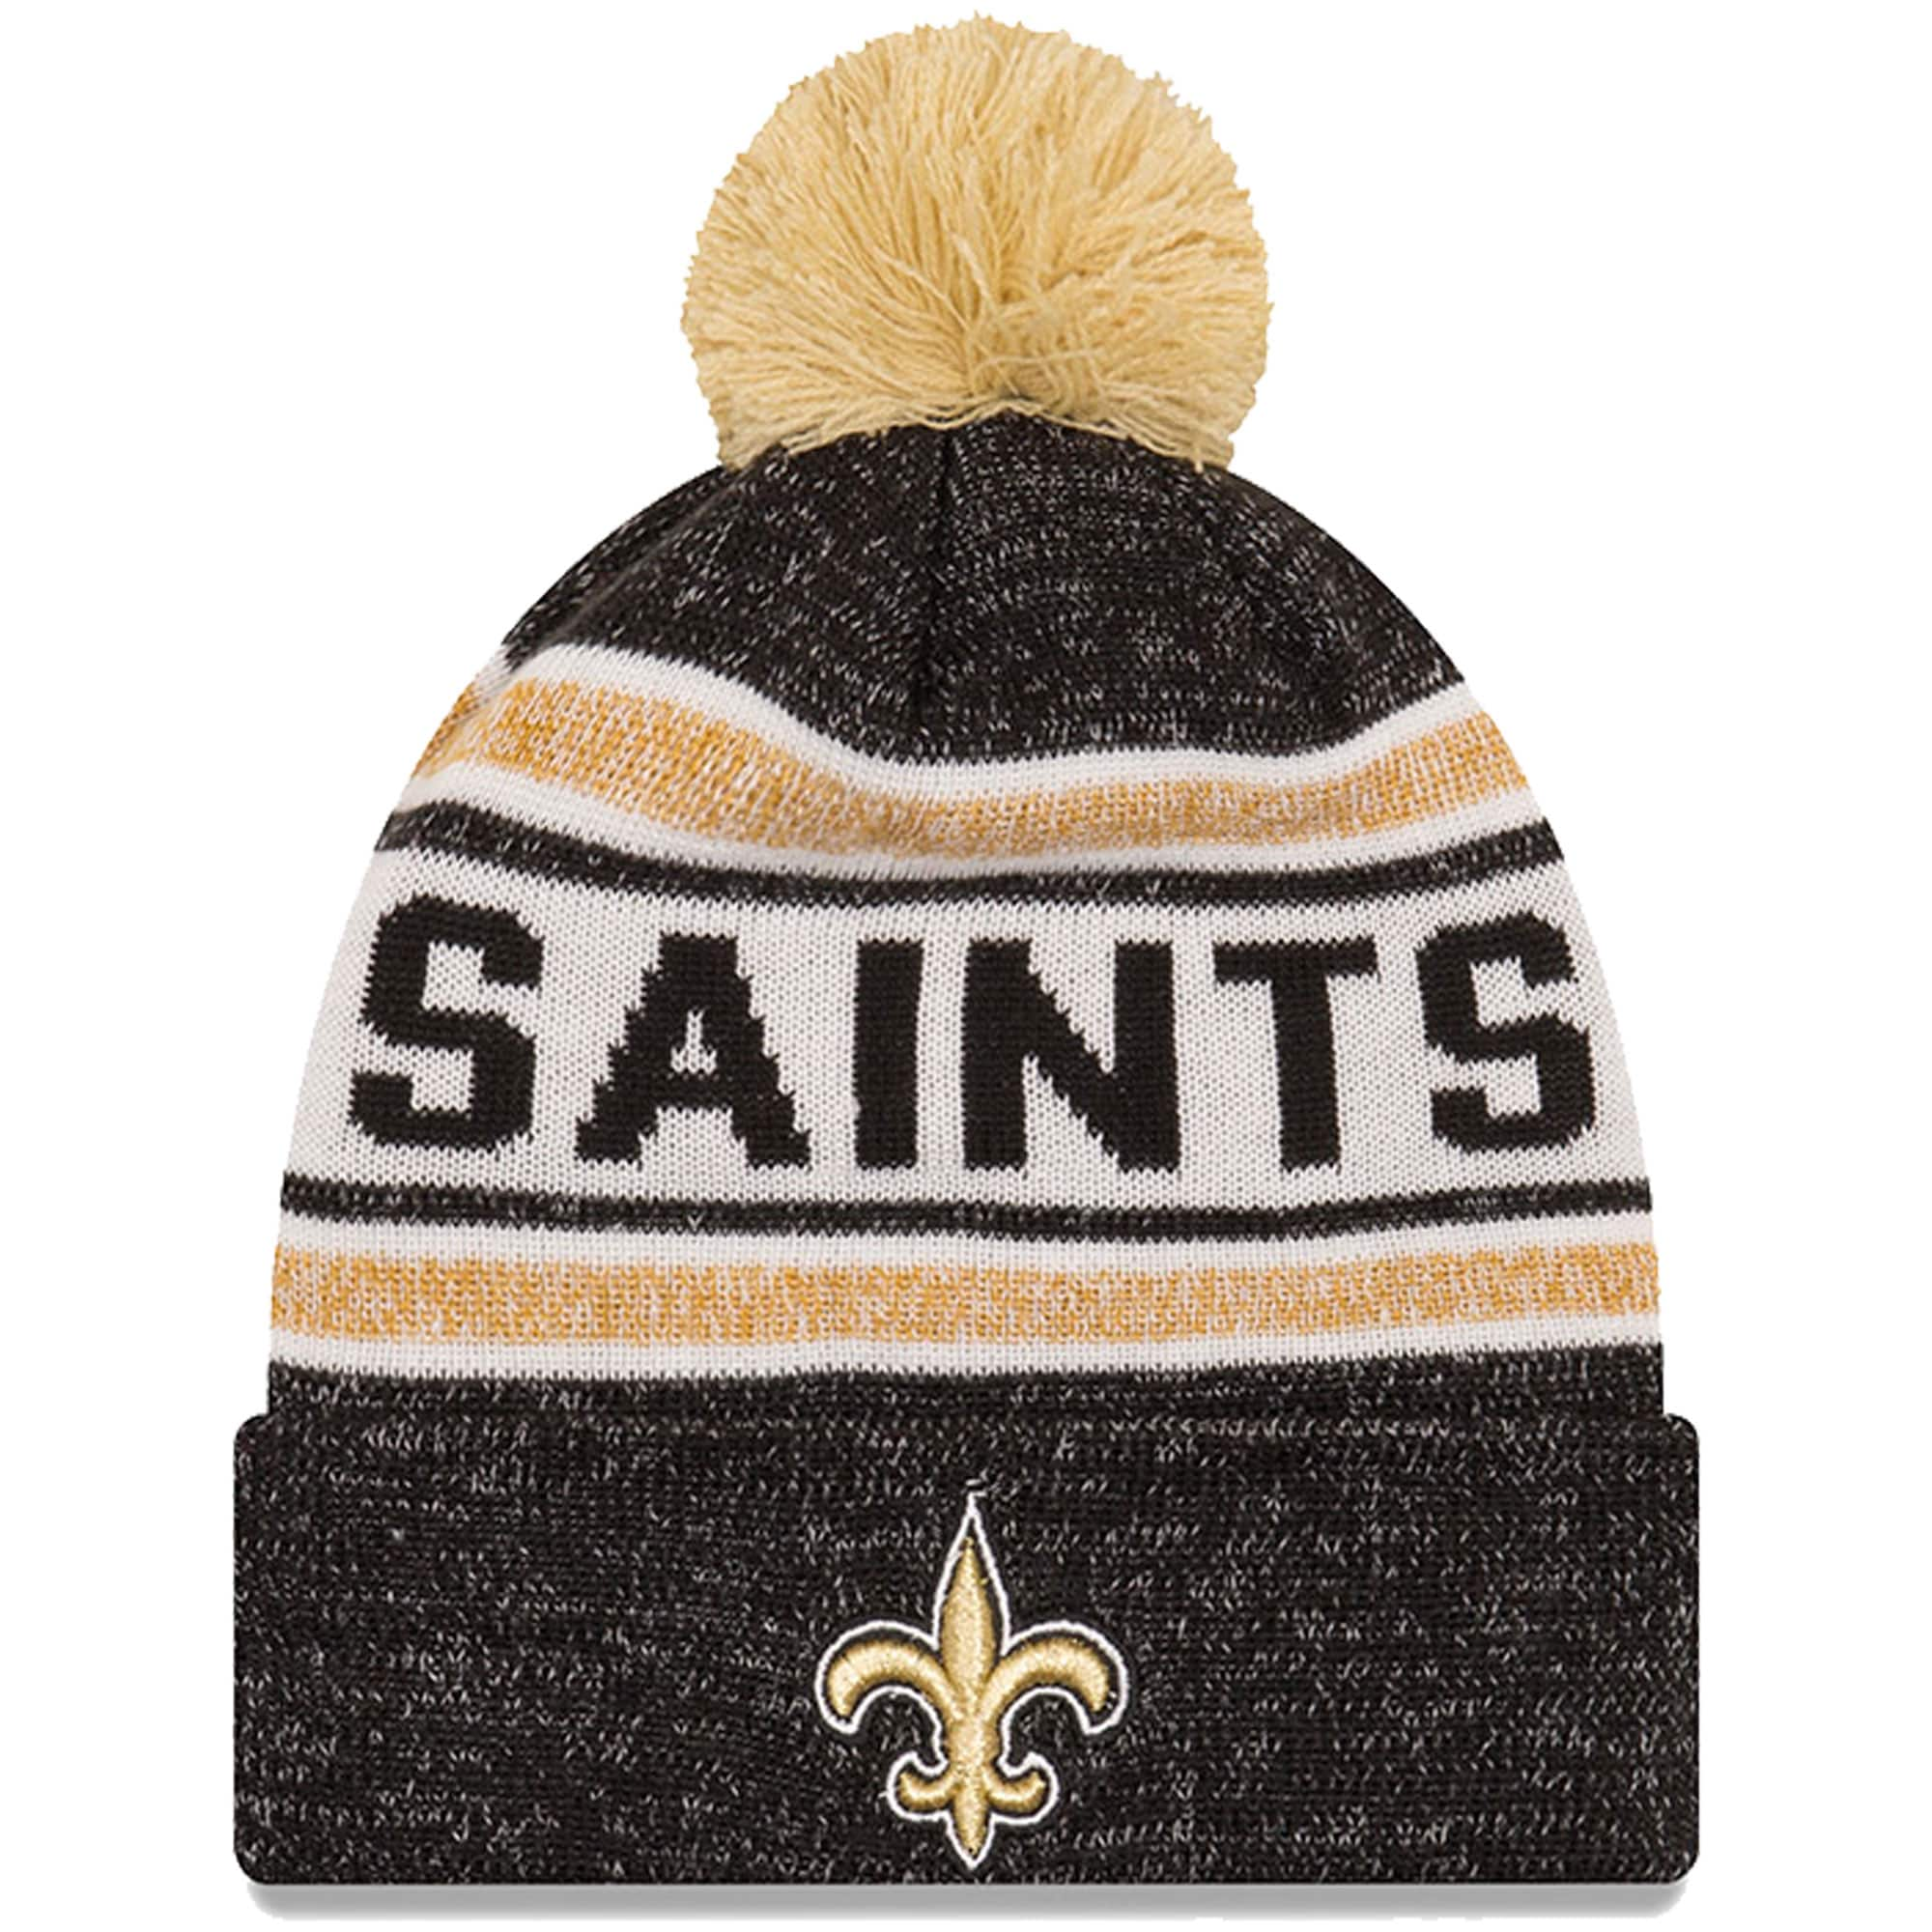 Men's New Orleans Saints New Era Black Toasty Cover Cuffed Knit Hat with Pom